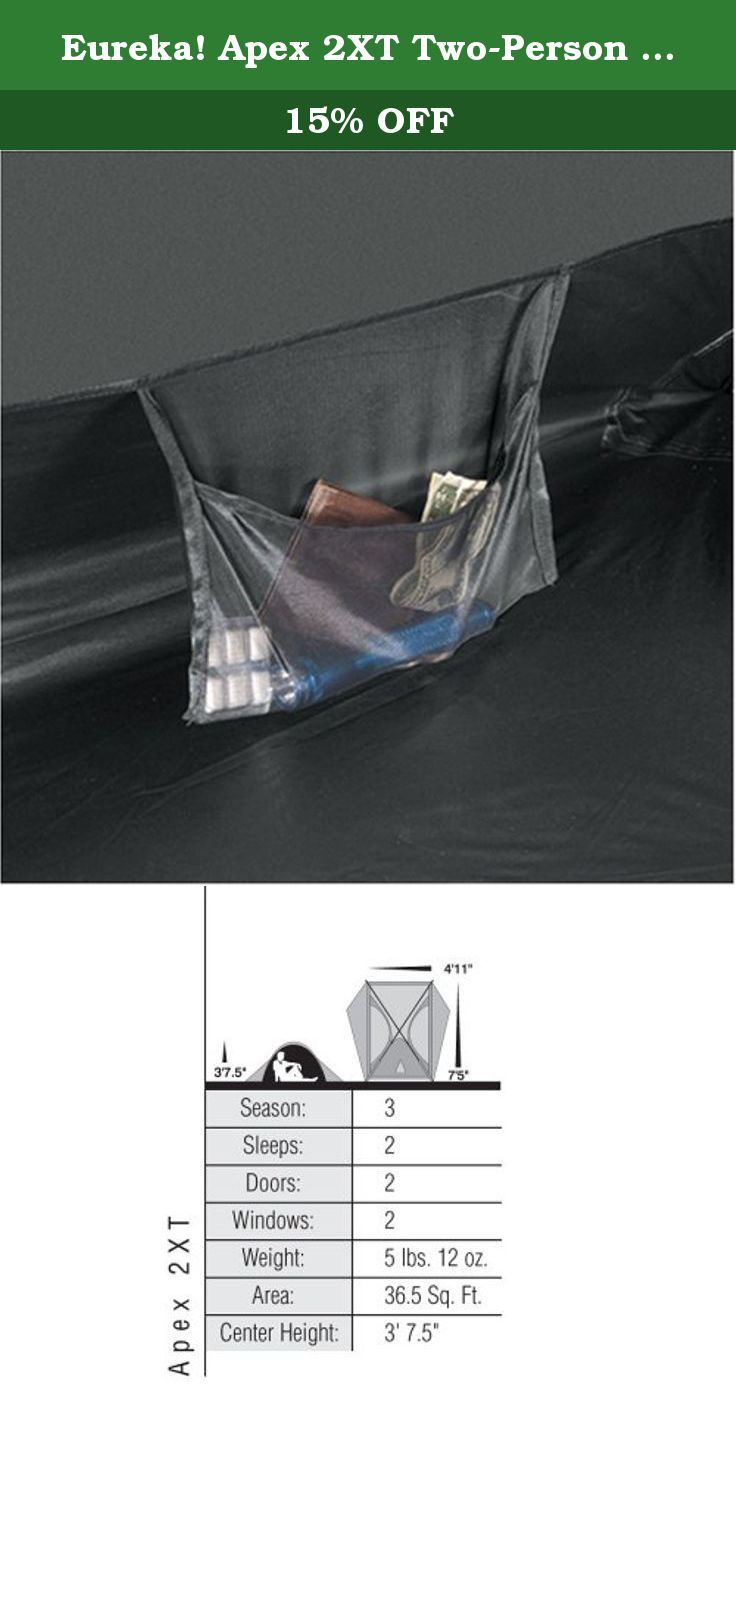 Eureka! Apex 2XT Two-Person Tent. Original Apex styling with 2 mesh doors and 2 full coverage vestibules.